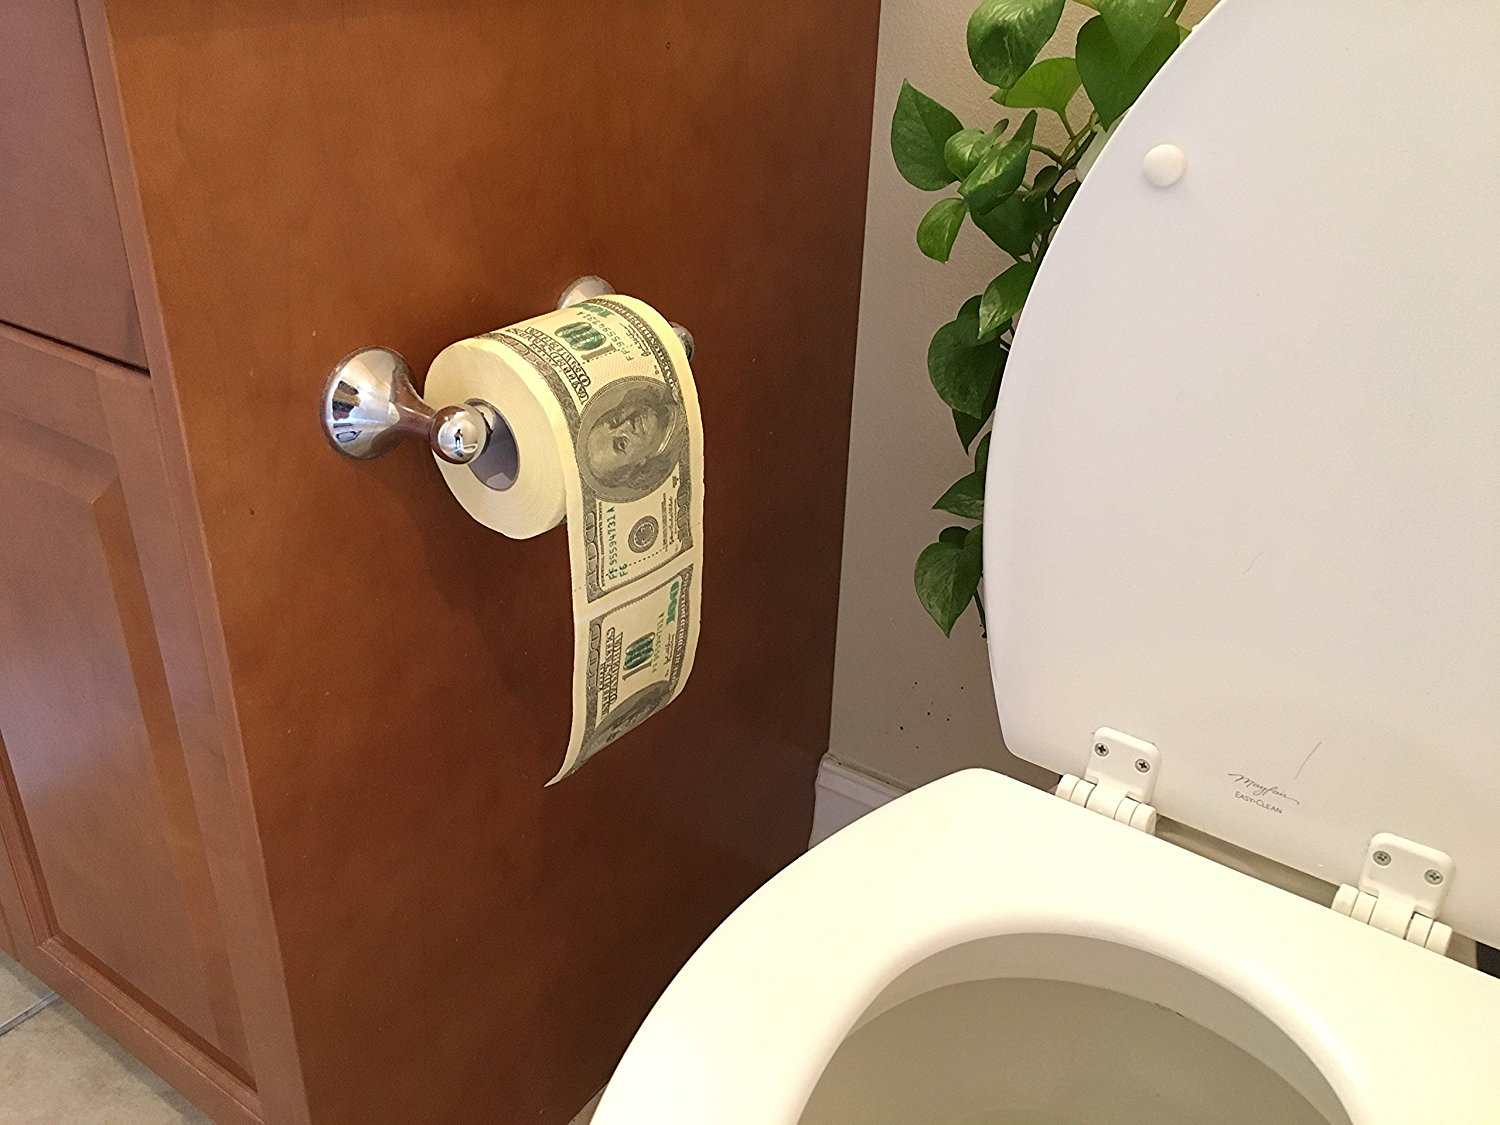 Buy SummitLink 1 Roll $100 Hundred US Dollar Bill Toilet Paper ...